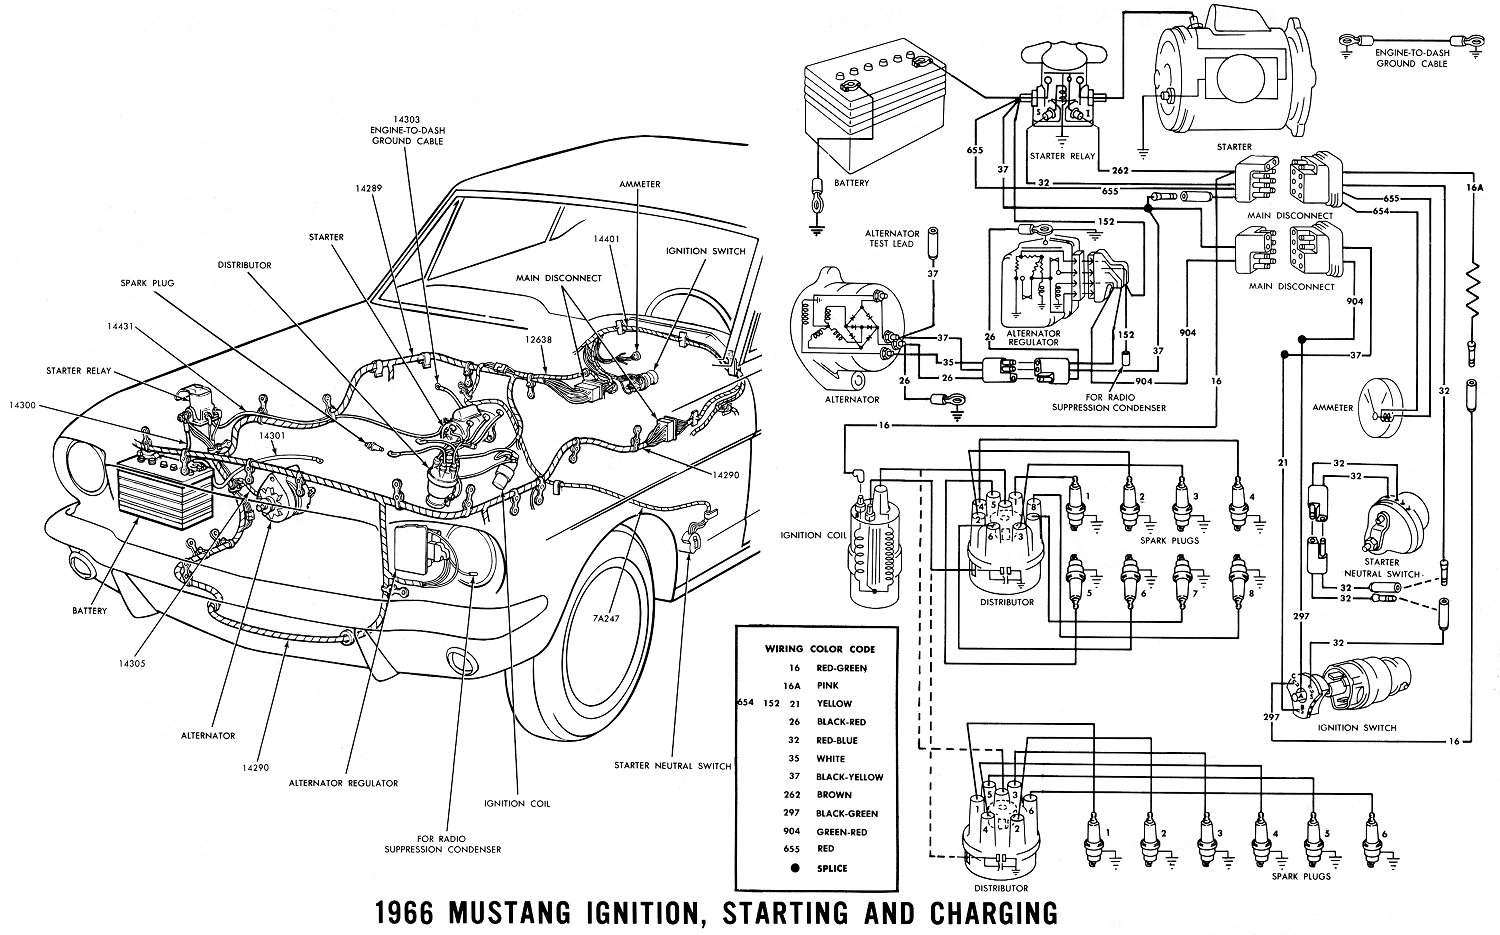 66ignit 1966 mustang wiring diagrams average joe restoration mustang wiring diagrams at gsmx.co